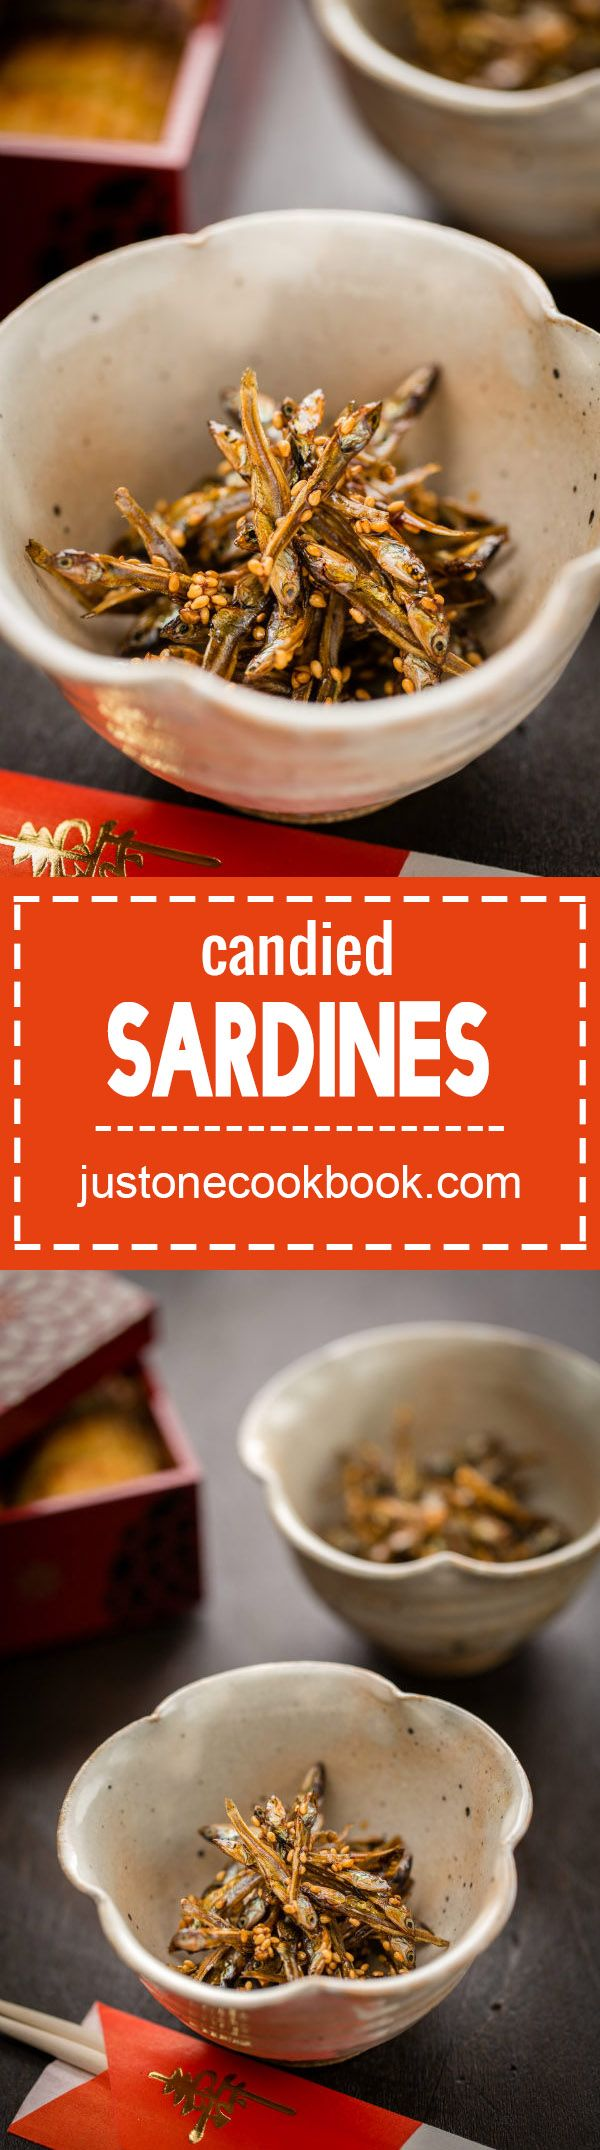 Tazukuri candied sardines recipe easy recipes and japanese food forumfinder Gallery